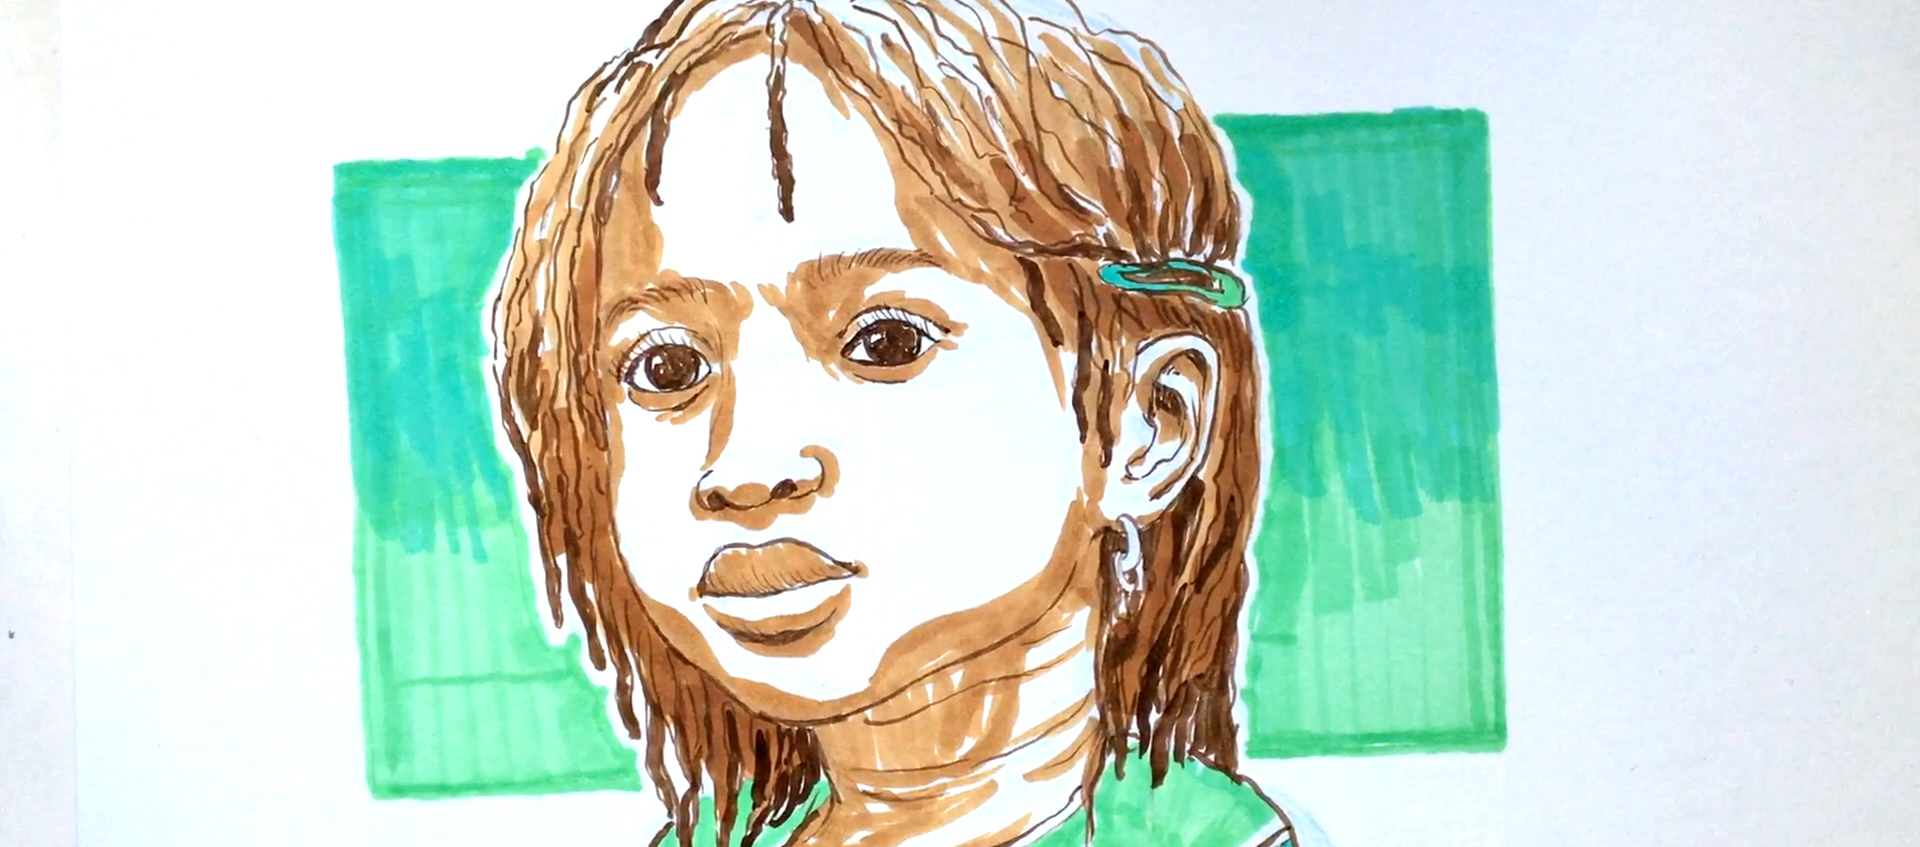 Portrait of a young girl of color against a green color block by illustrator & children's book author Robert Liu-Trujillo